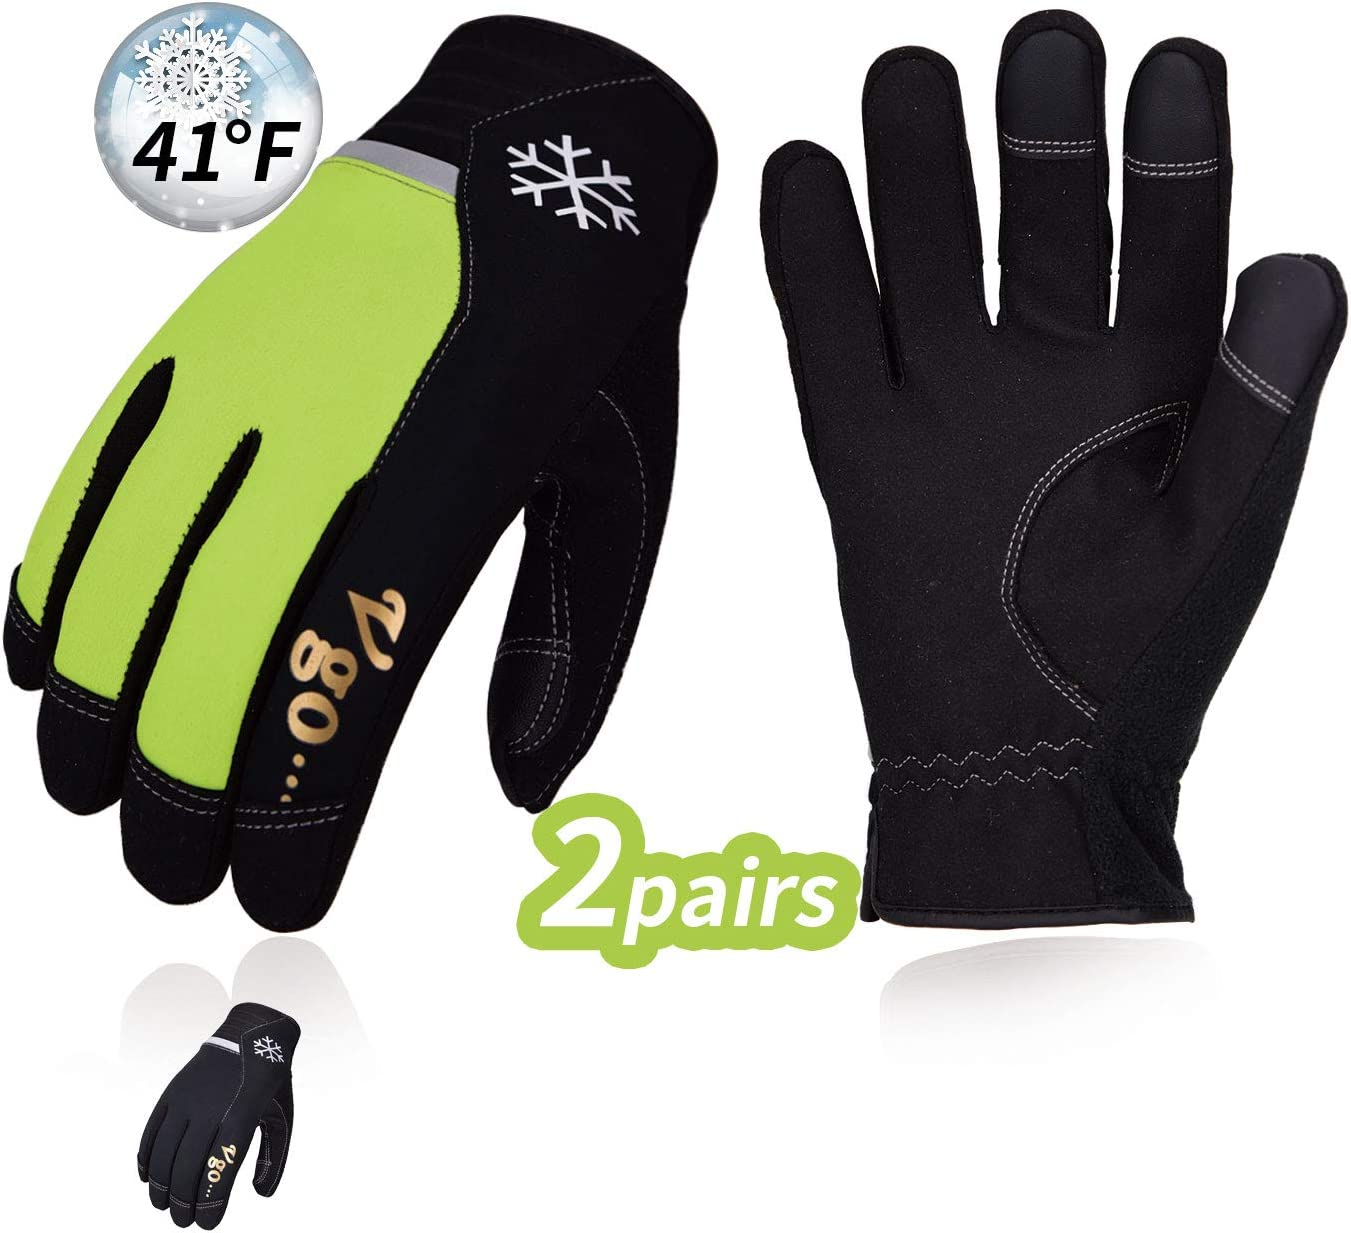 Vgo 2Pairs 41℉ or Above Winter Leather Gloves High Dexterity Cold Storage Work Gloves,Touchscreen (Size XL,Black&Fluorescent Green,AL8772)